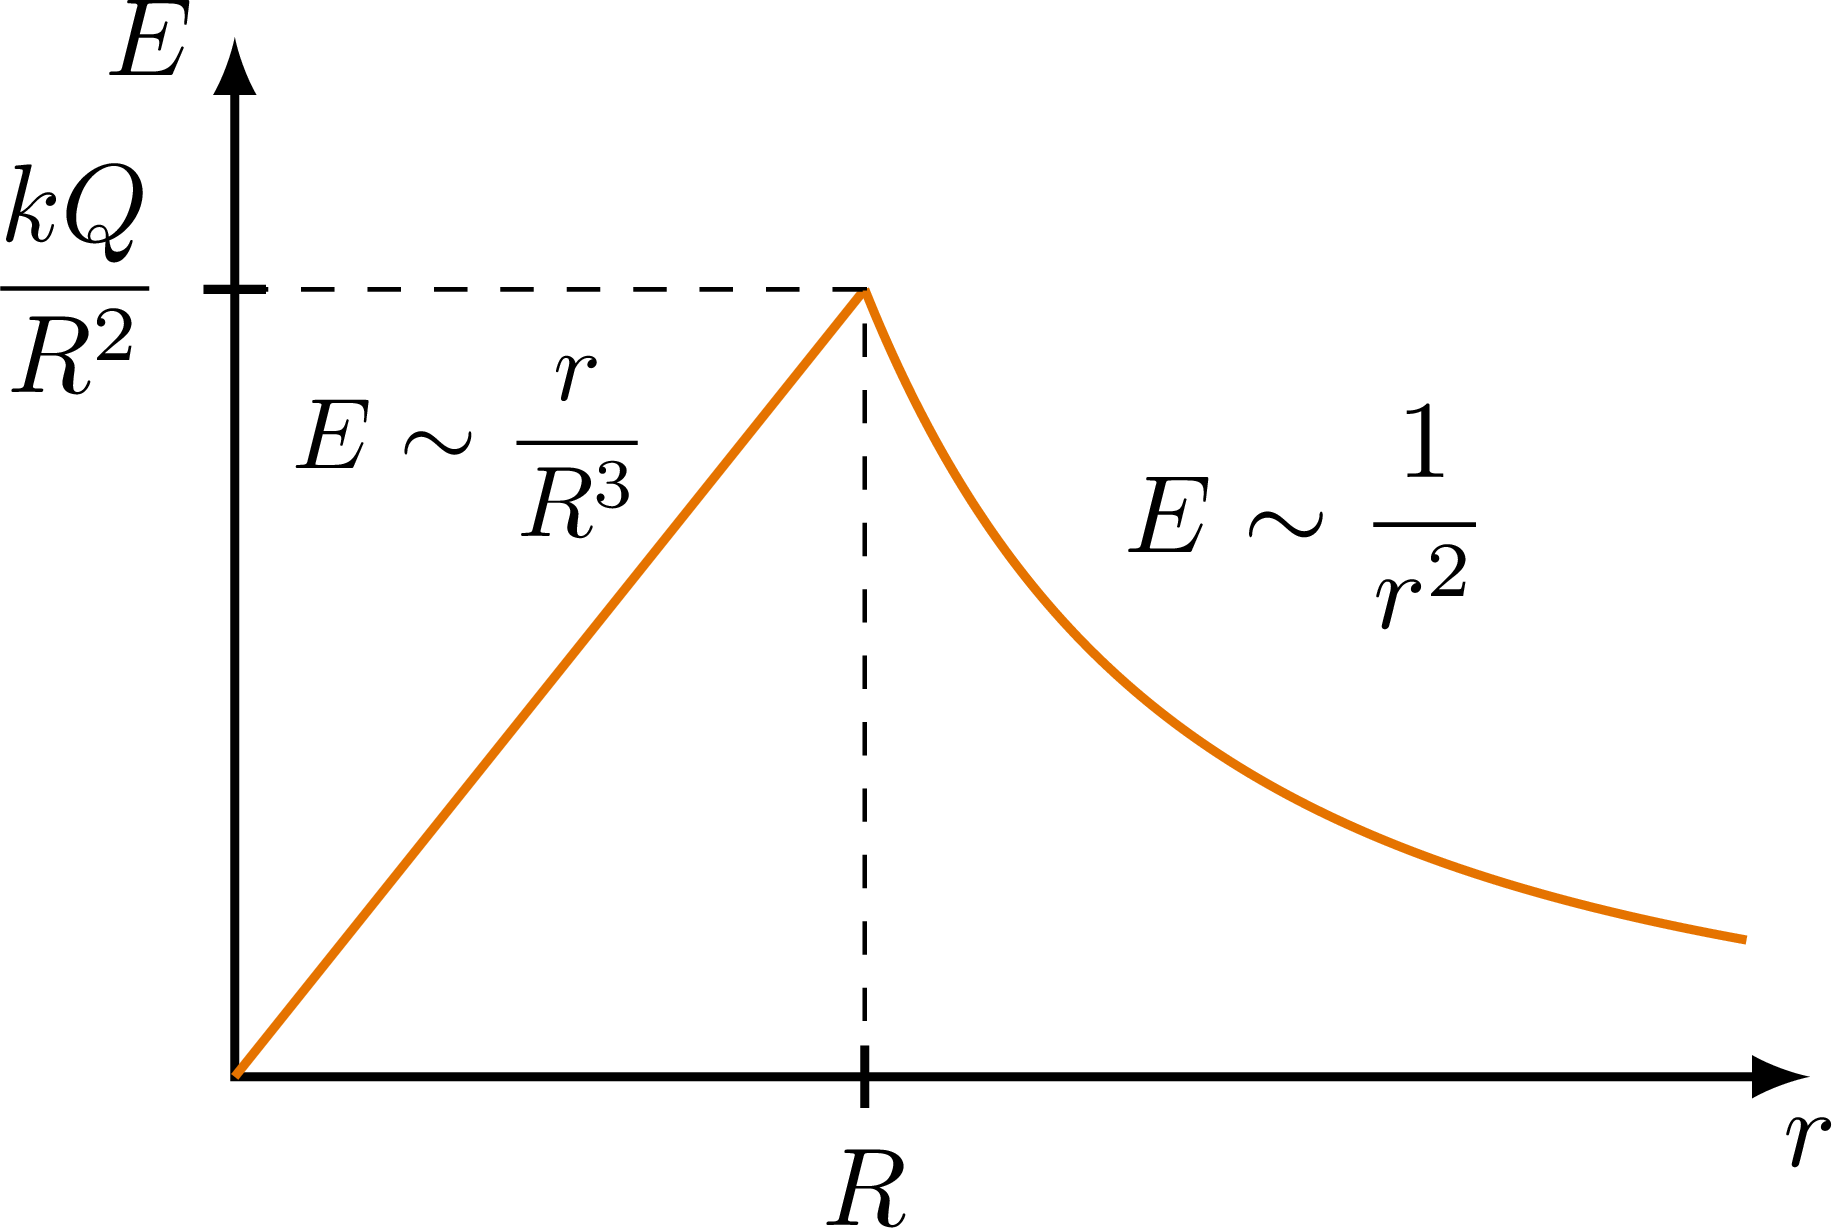 electric_field_plots-004.png